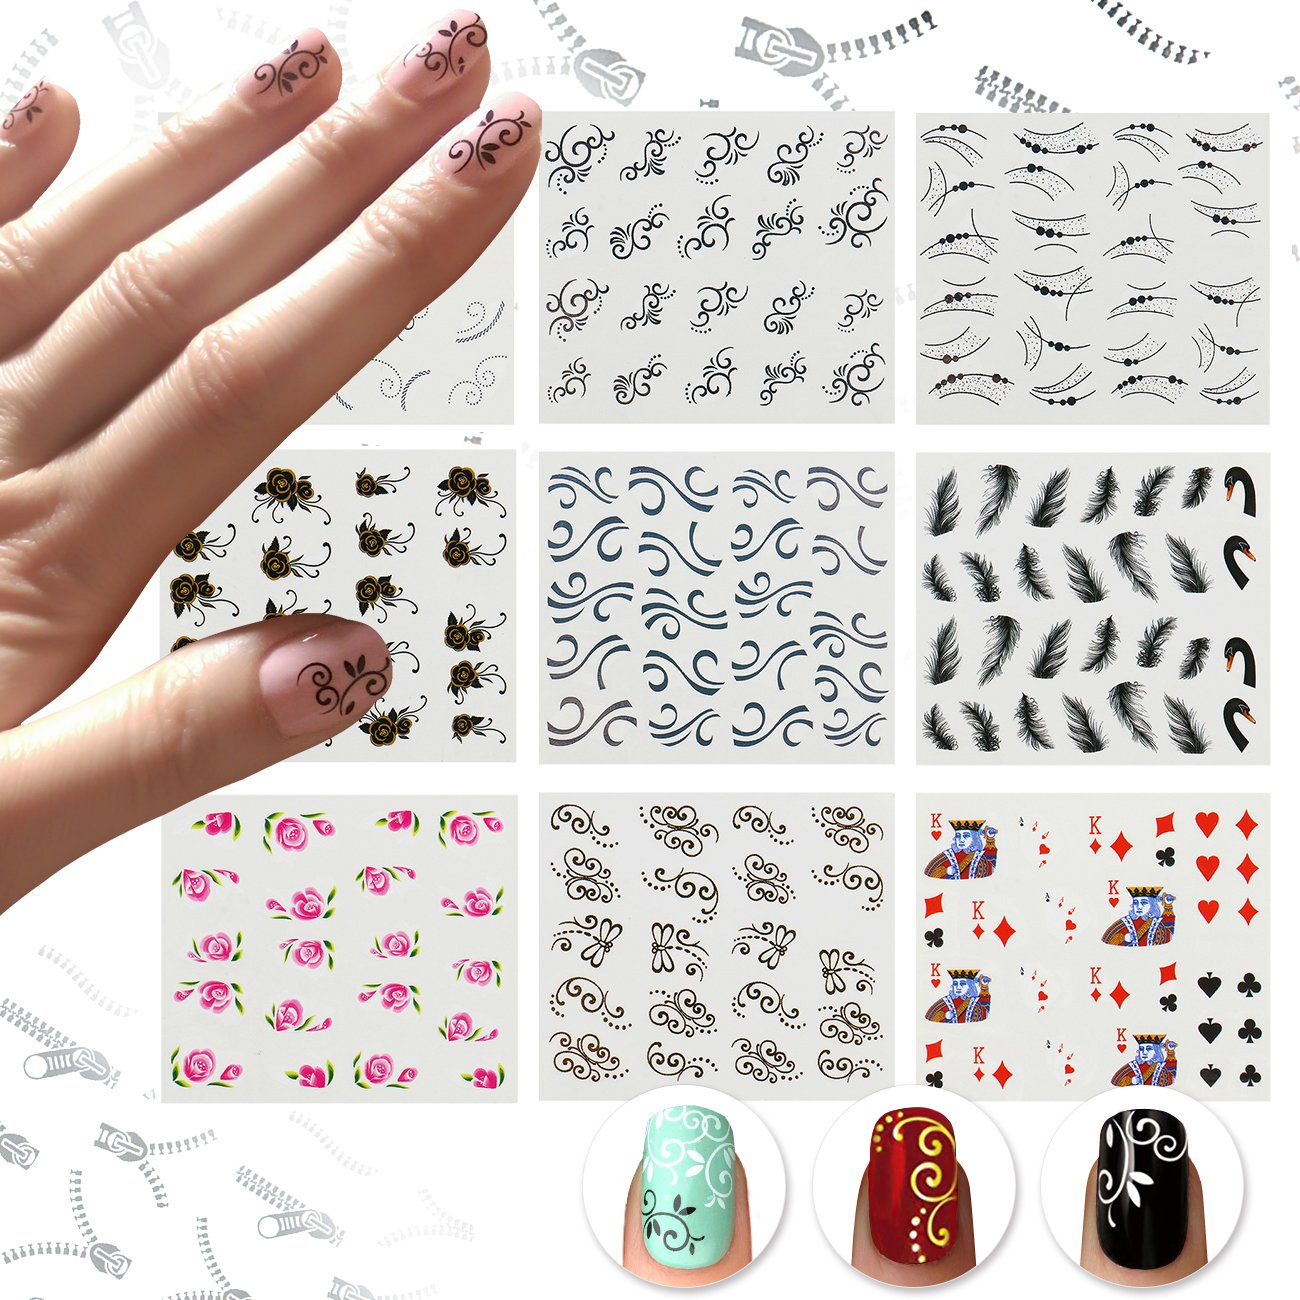 graphic relating to Printable Nail Decals titled Nicedeco 15 Sheets Nail Stickers Nail Tattoo 3D Nail Artwork Decal Drinking water Transfers Decals Nail Suggestions